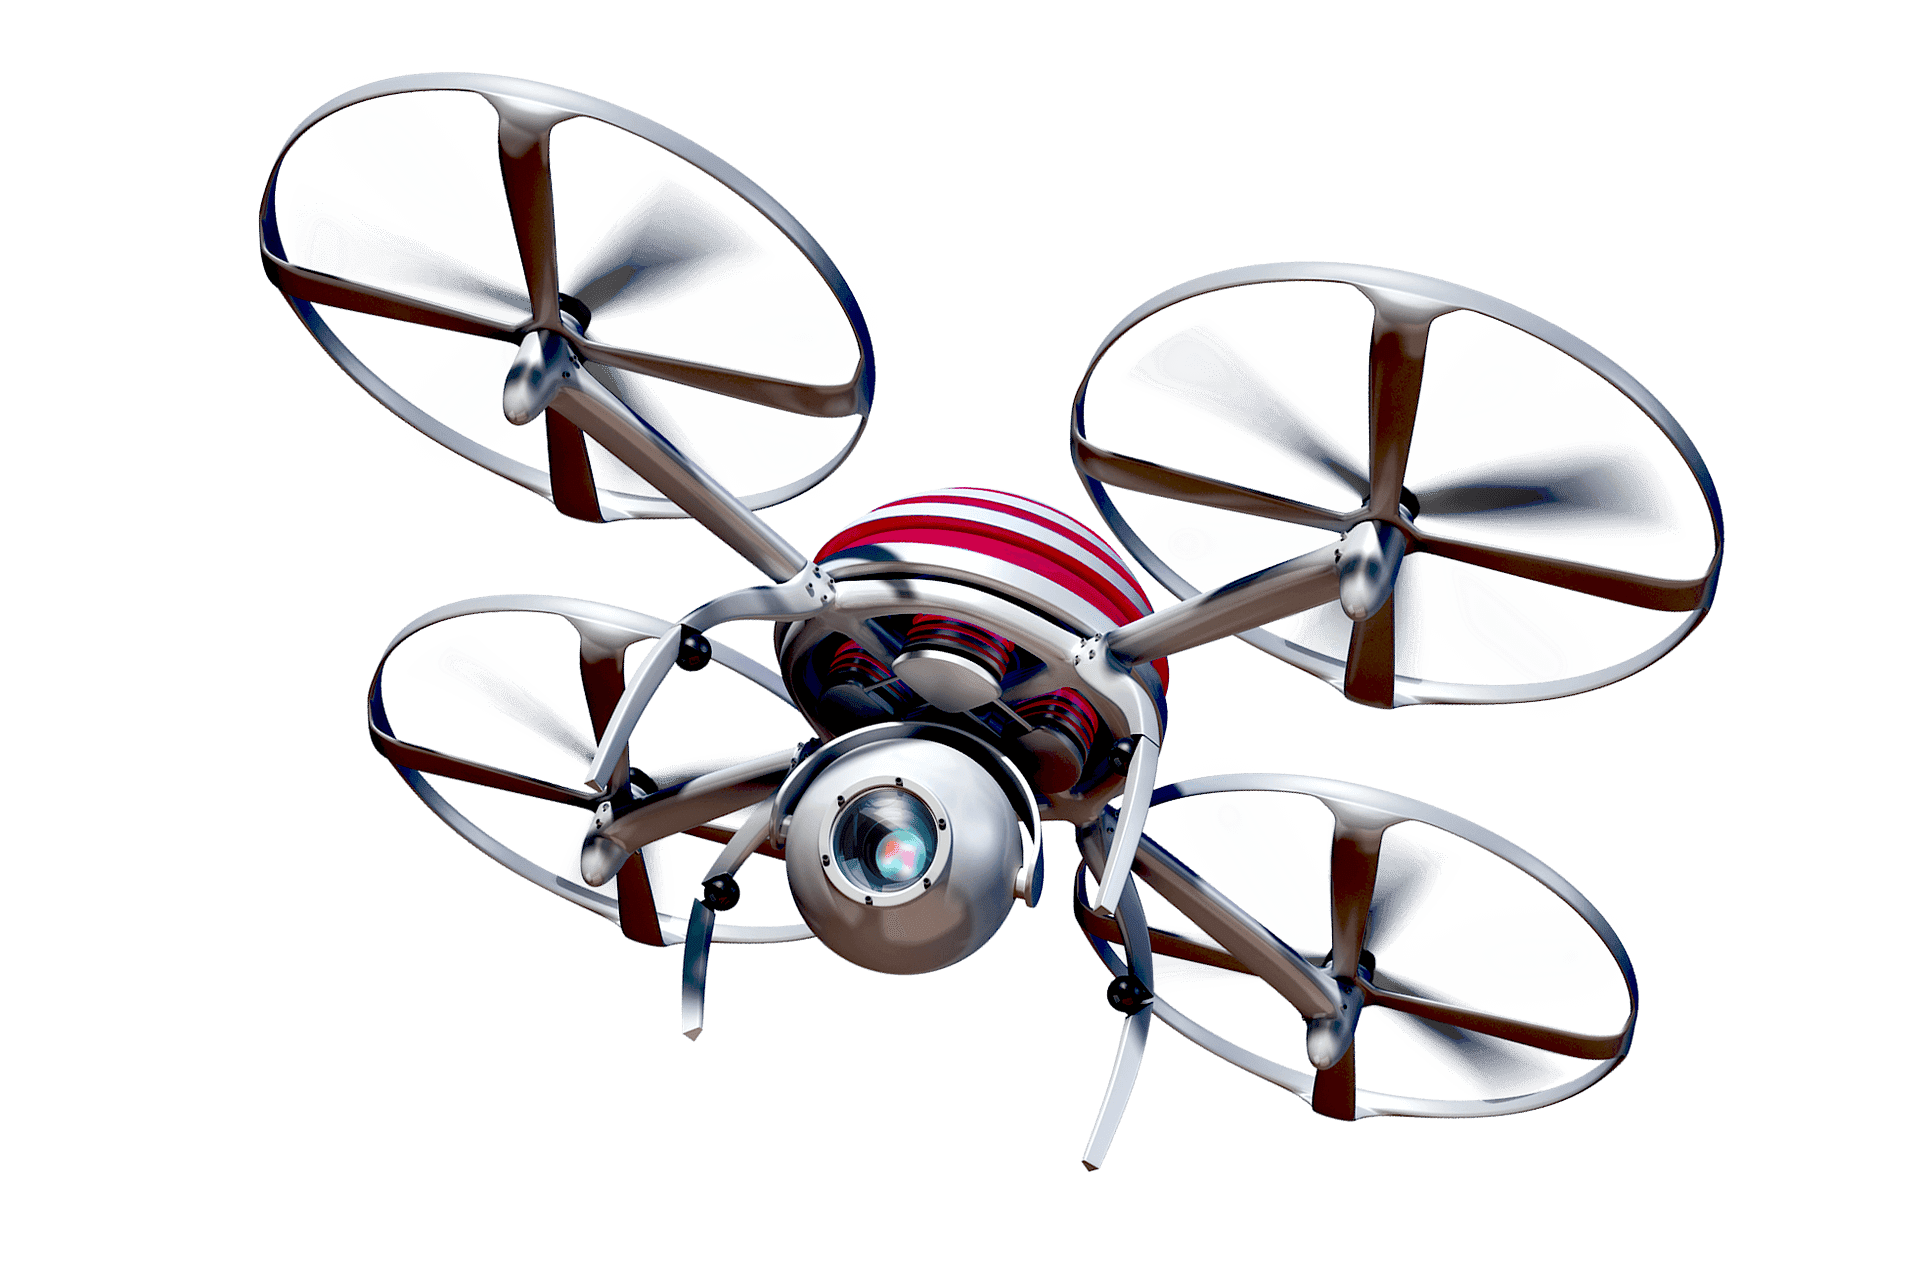 content/nb-no/images/repository/isc/2020/a-spy-drone-with-large-camera-lens.png